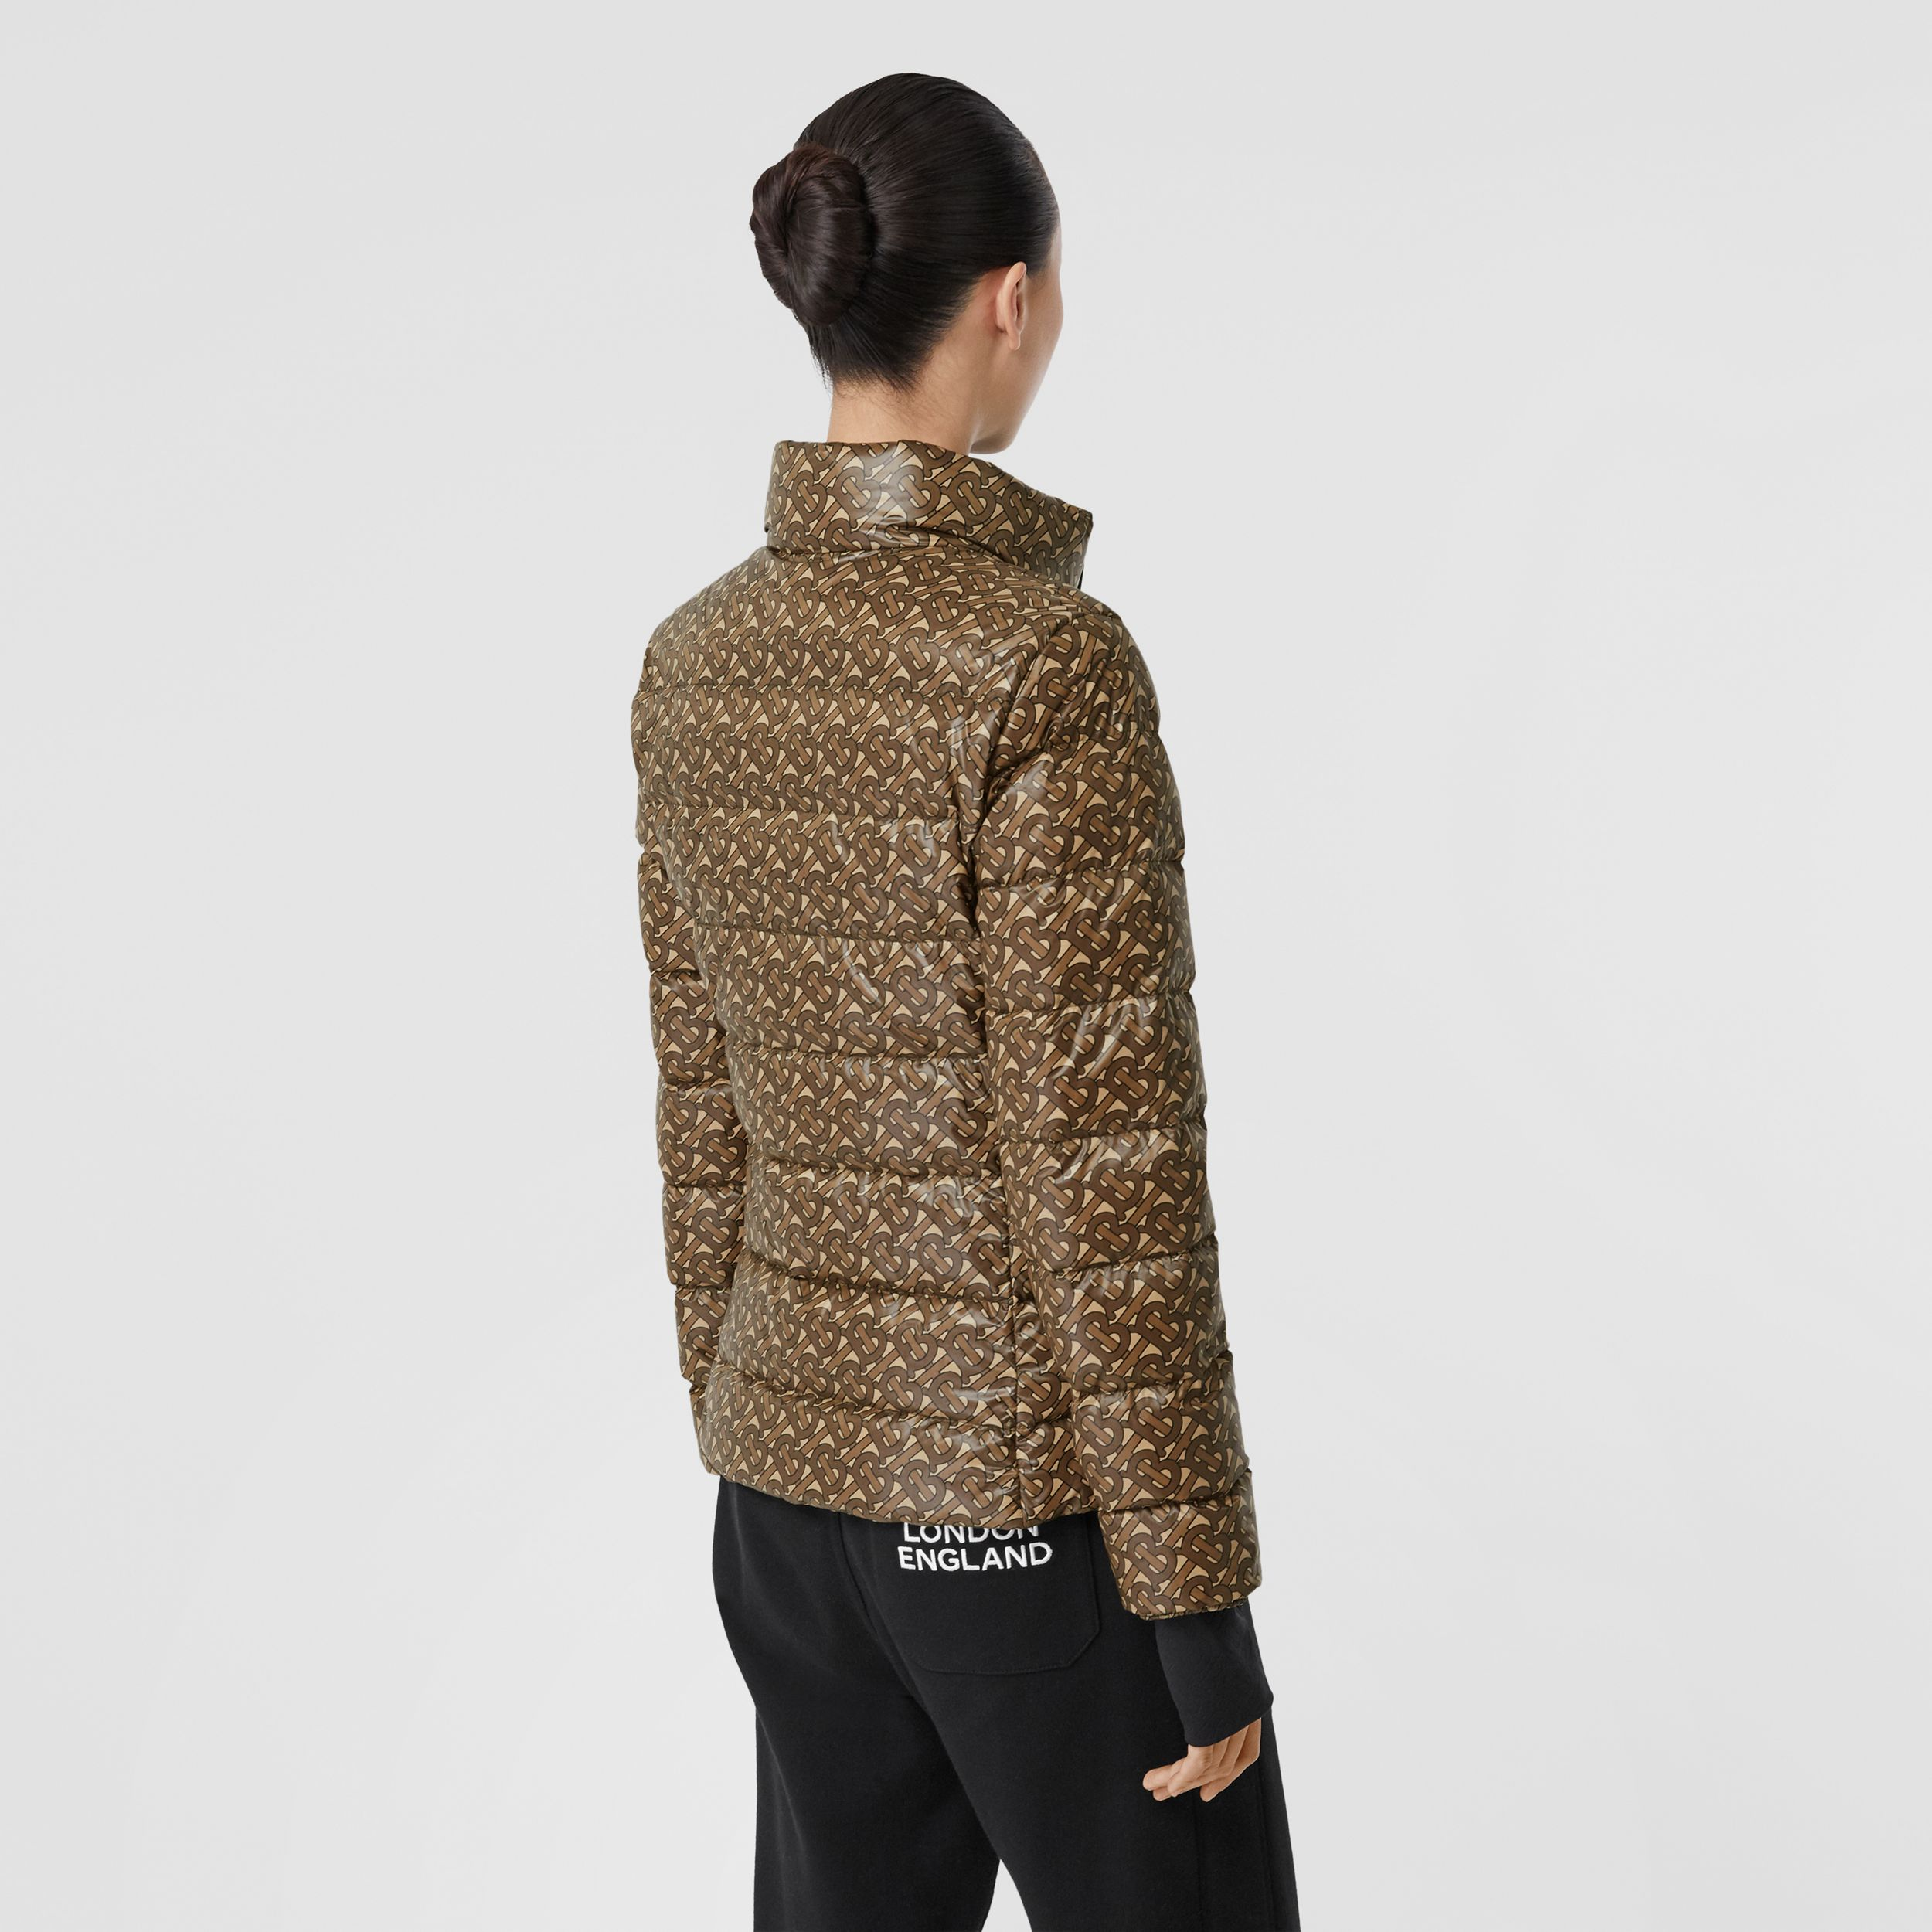 Monogram Print Nylon Puffer Jacket in Bridle Brown - Women | Burberry - 3